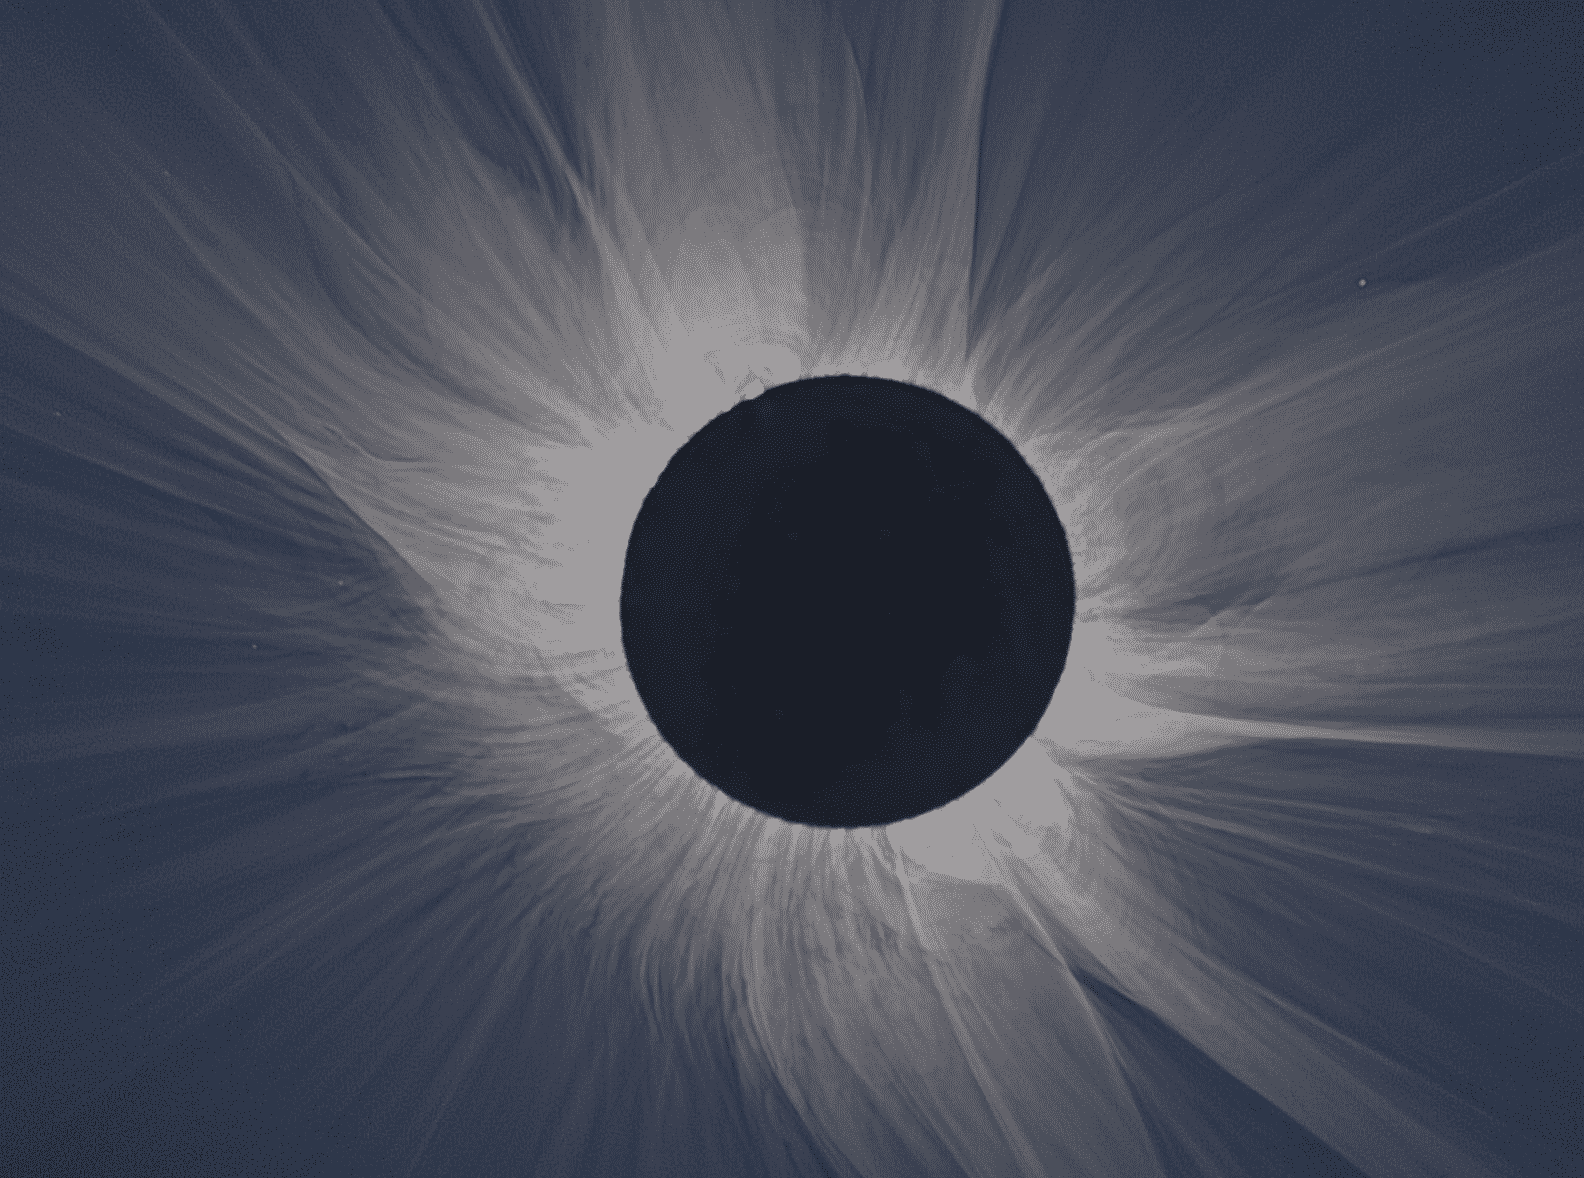 During the totality of the solar eclipse, the sun's outer atmosphere can be seen.